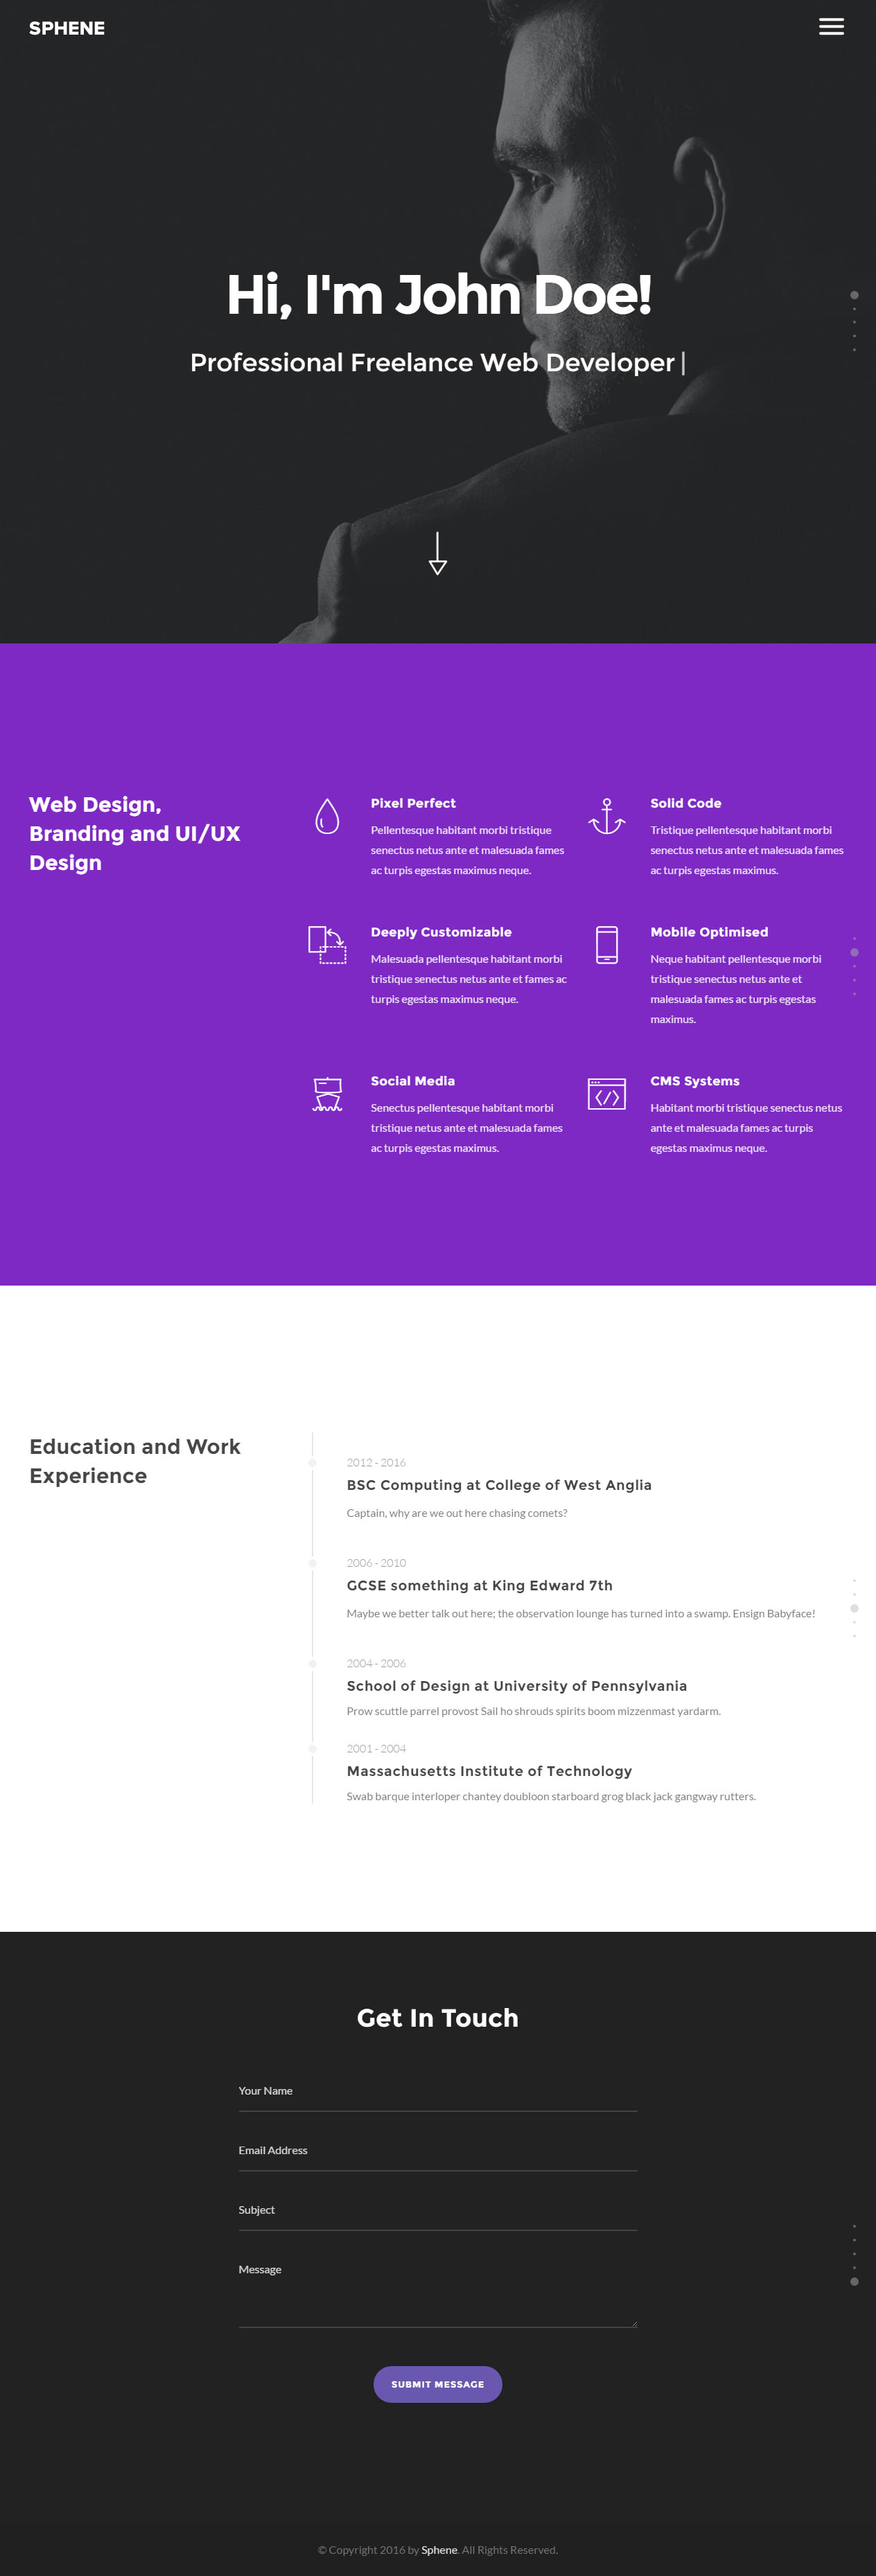 Sphene Resume And CV Website Template  Resume Website Template